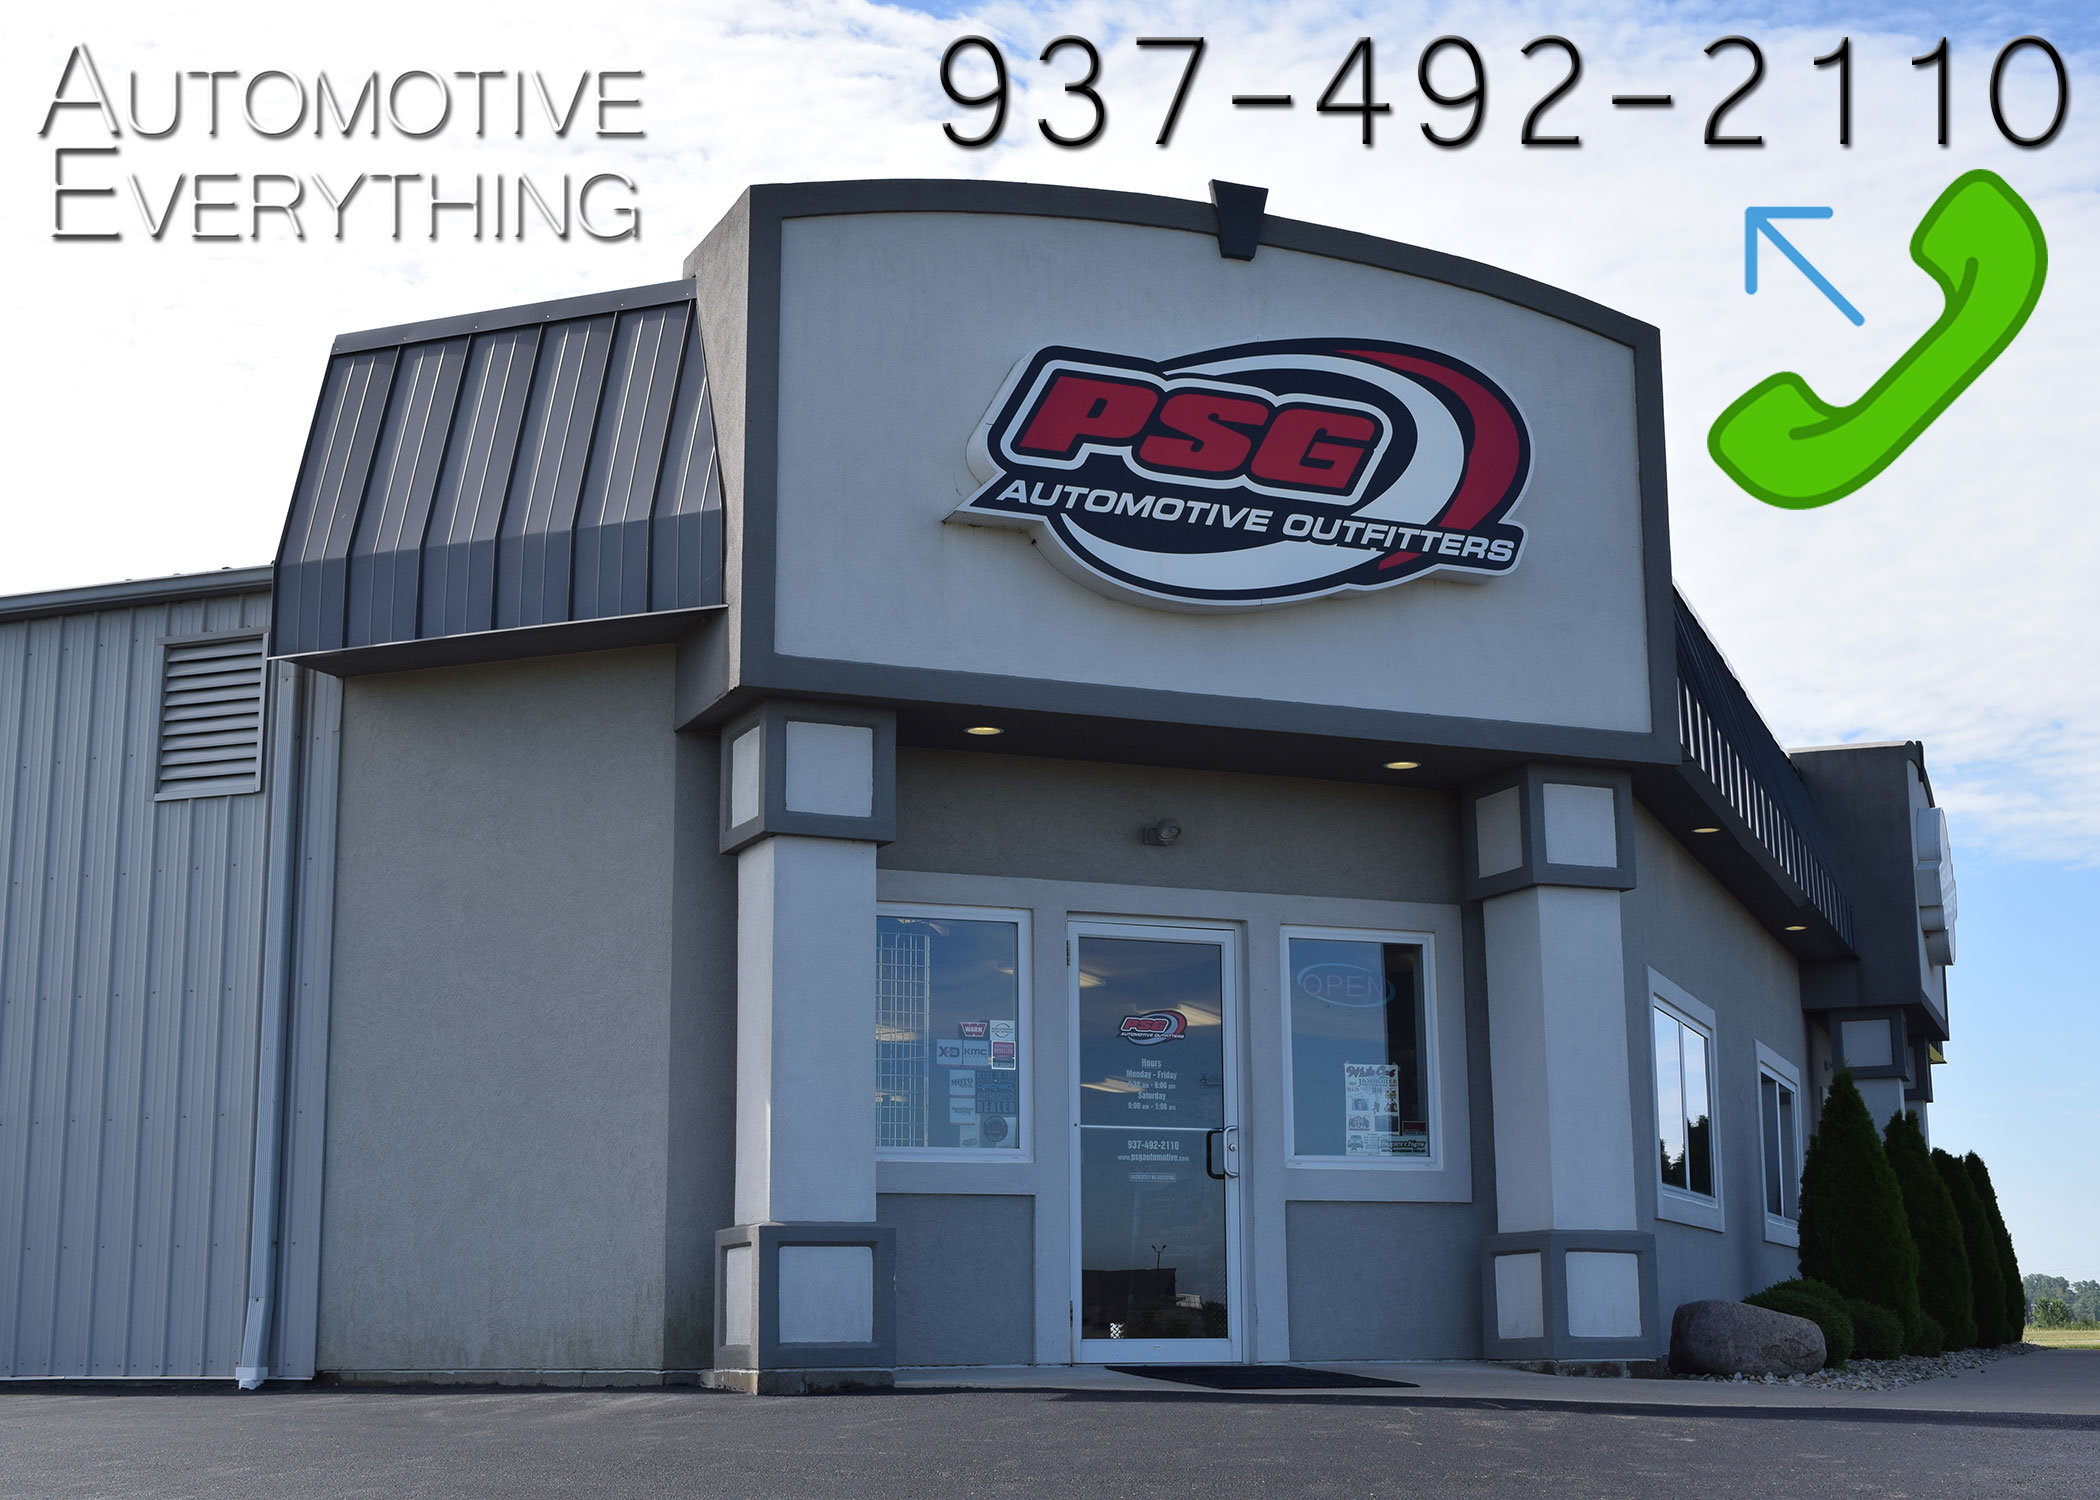 Psg Automotive Outfitters Sidney Oh 937 492 2110